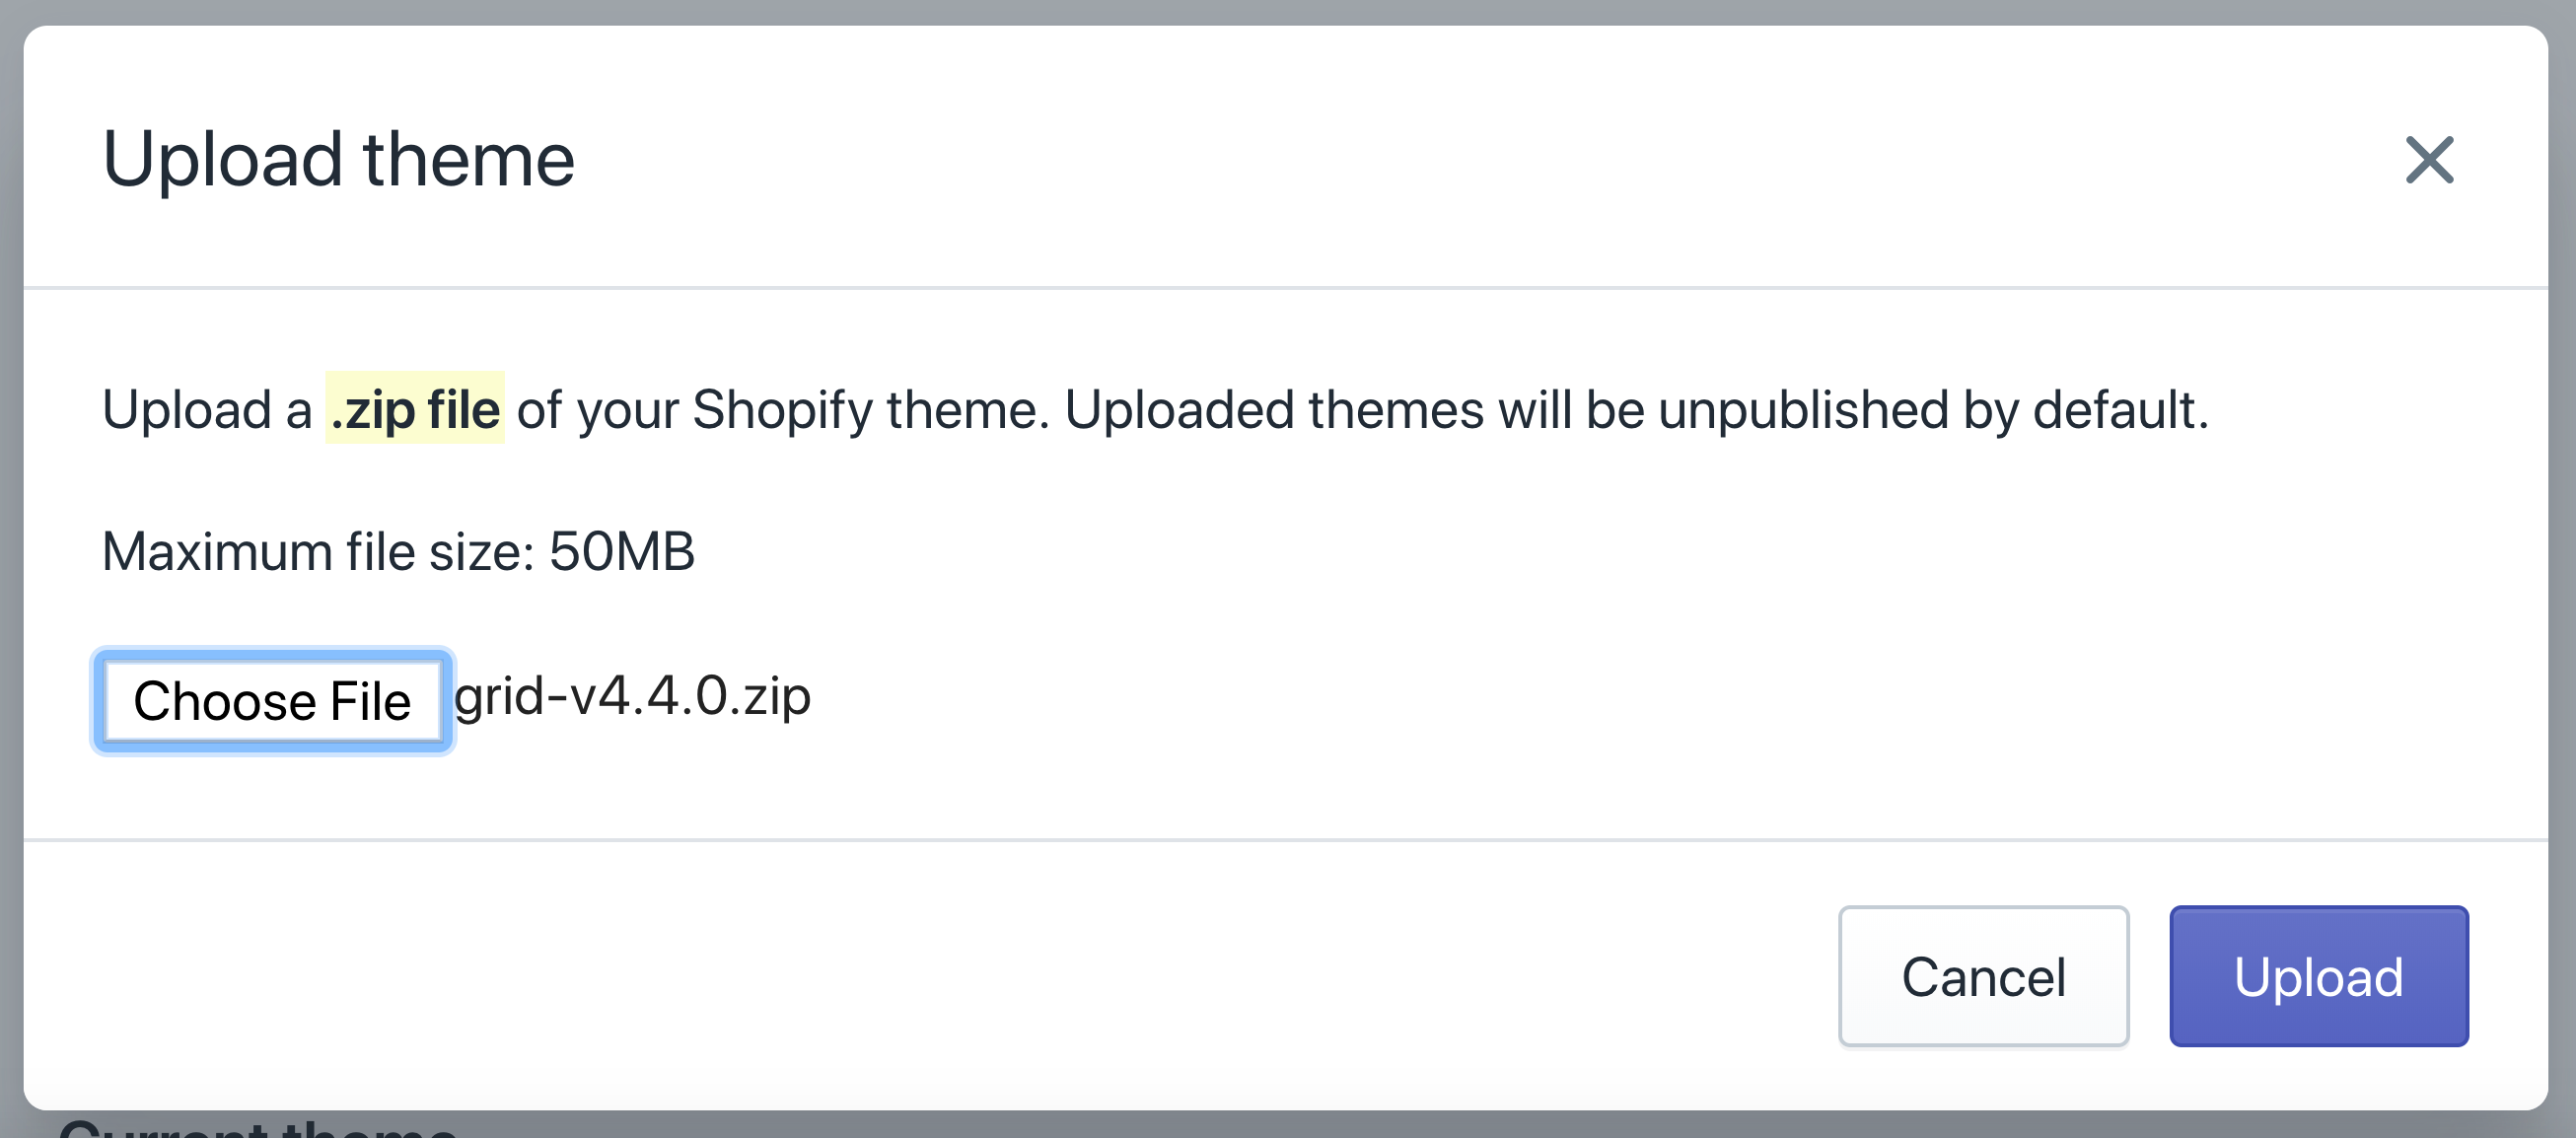 Online store's upload theme popup with Grid 4.4.0 loaded